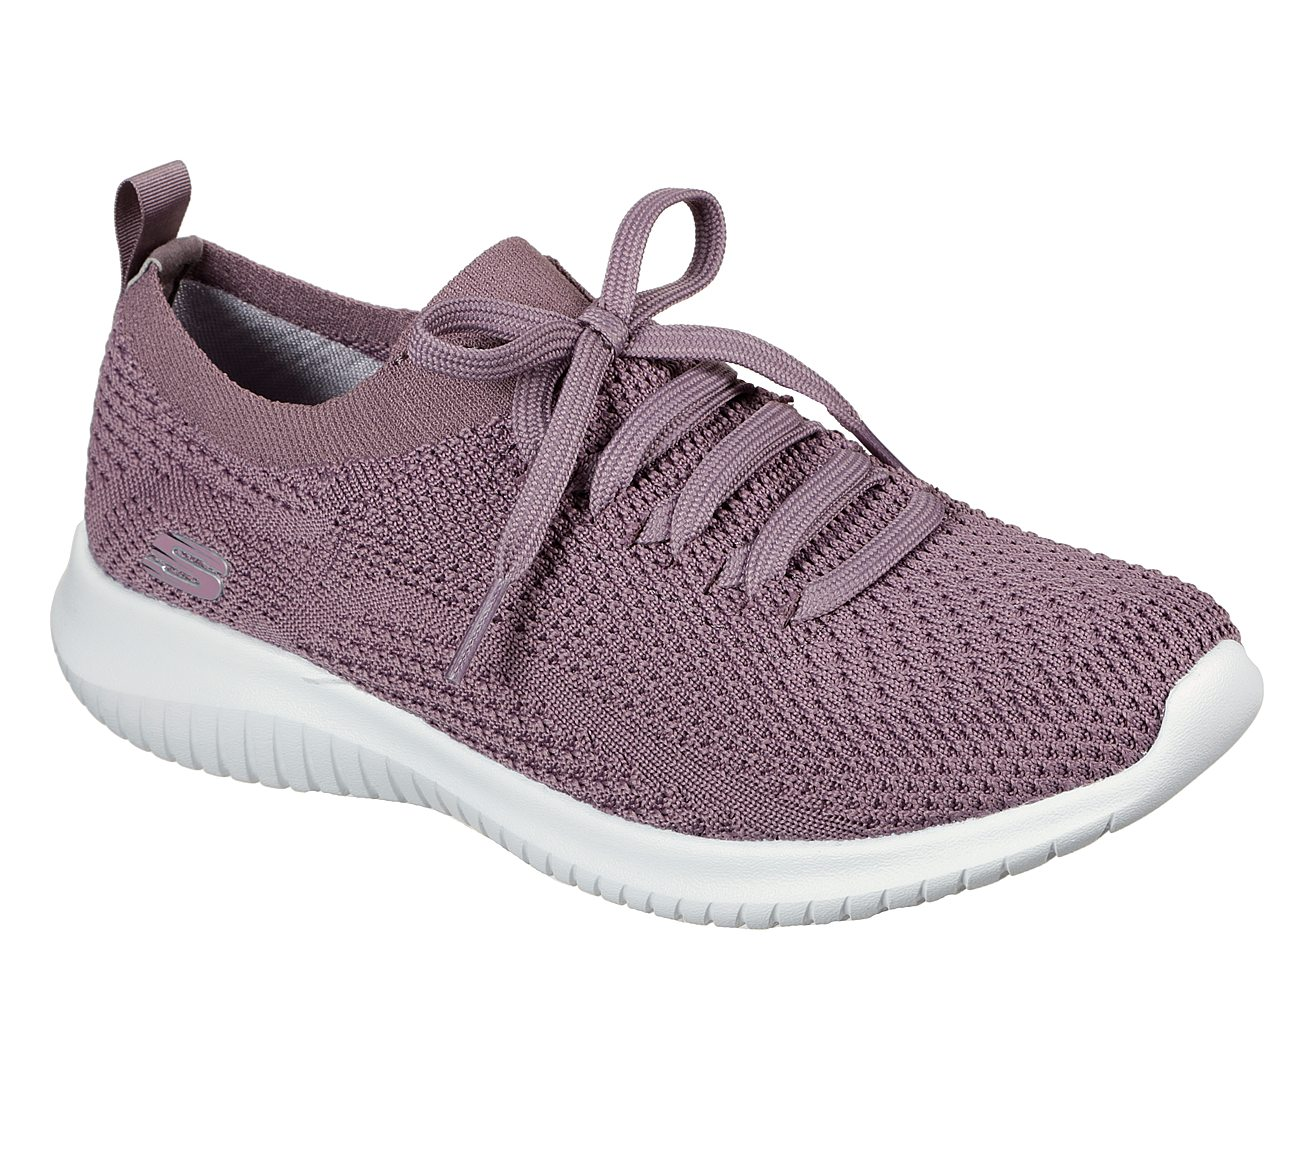 ce3bab33f63 Buy SKECHERS Ultra Flex - Statements Sport Shoes only 70